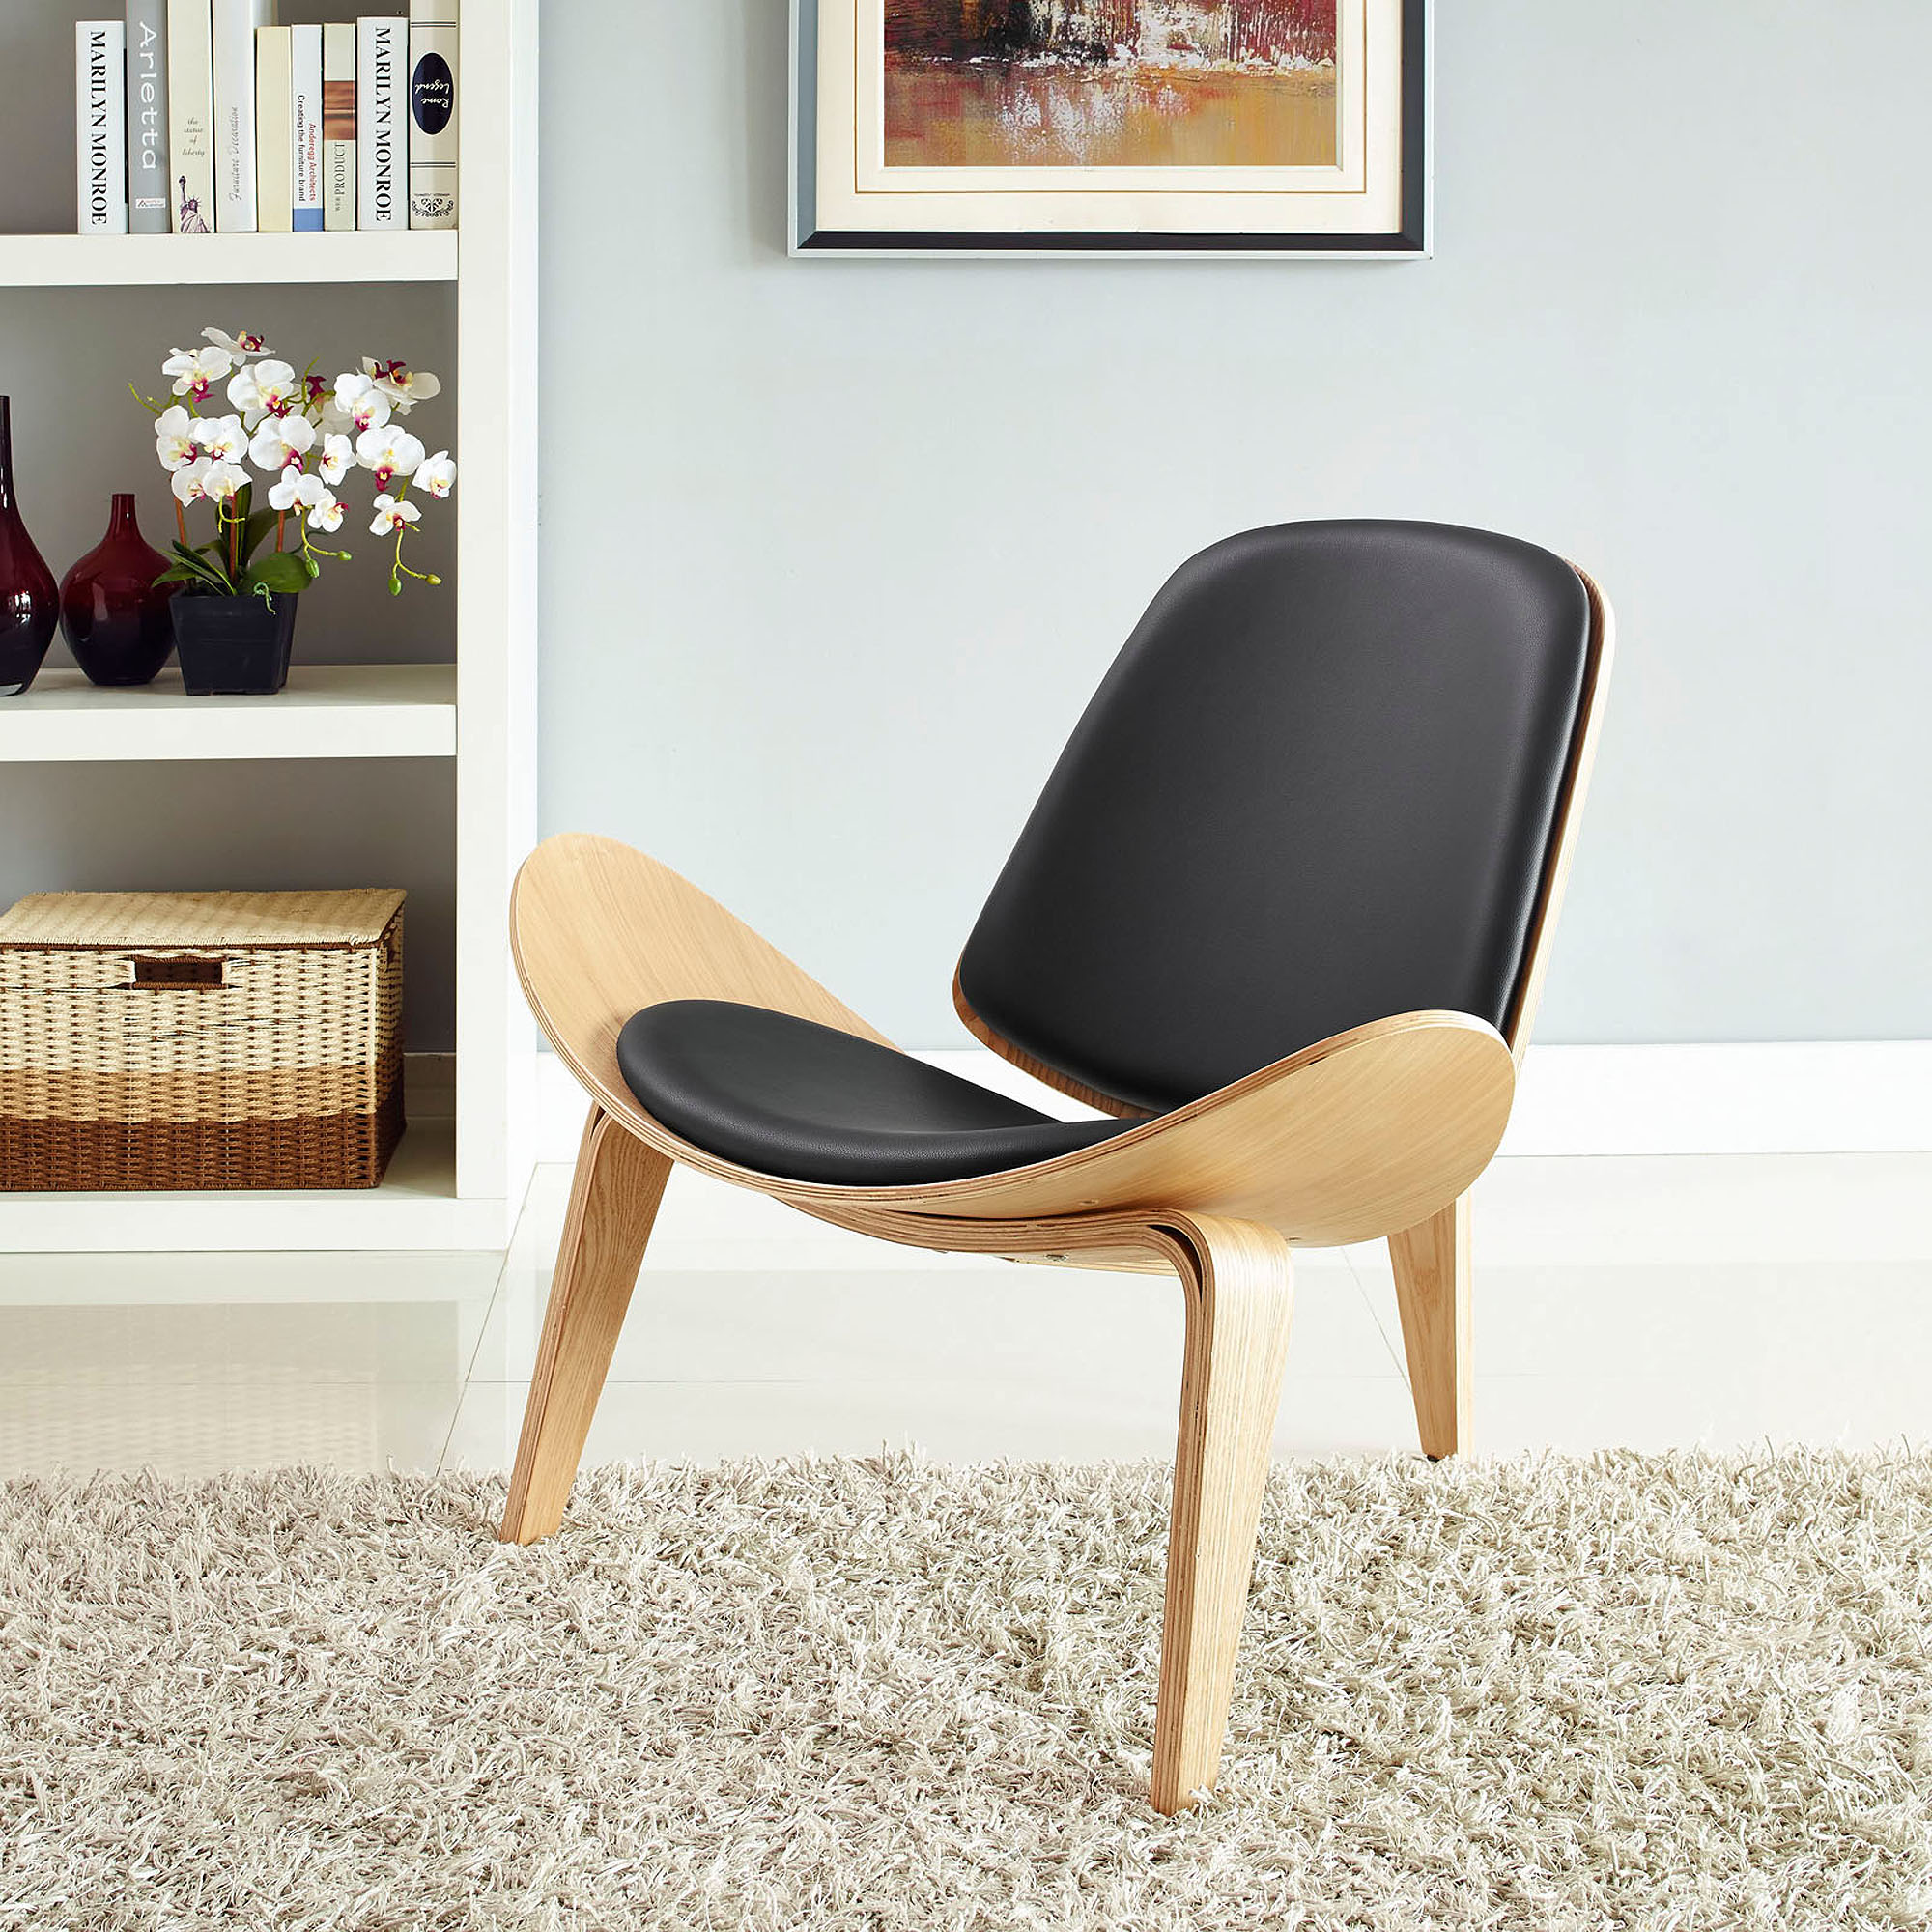 Modway Arch Upholstered Leatherette Lounge Chair in Oak Black